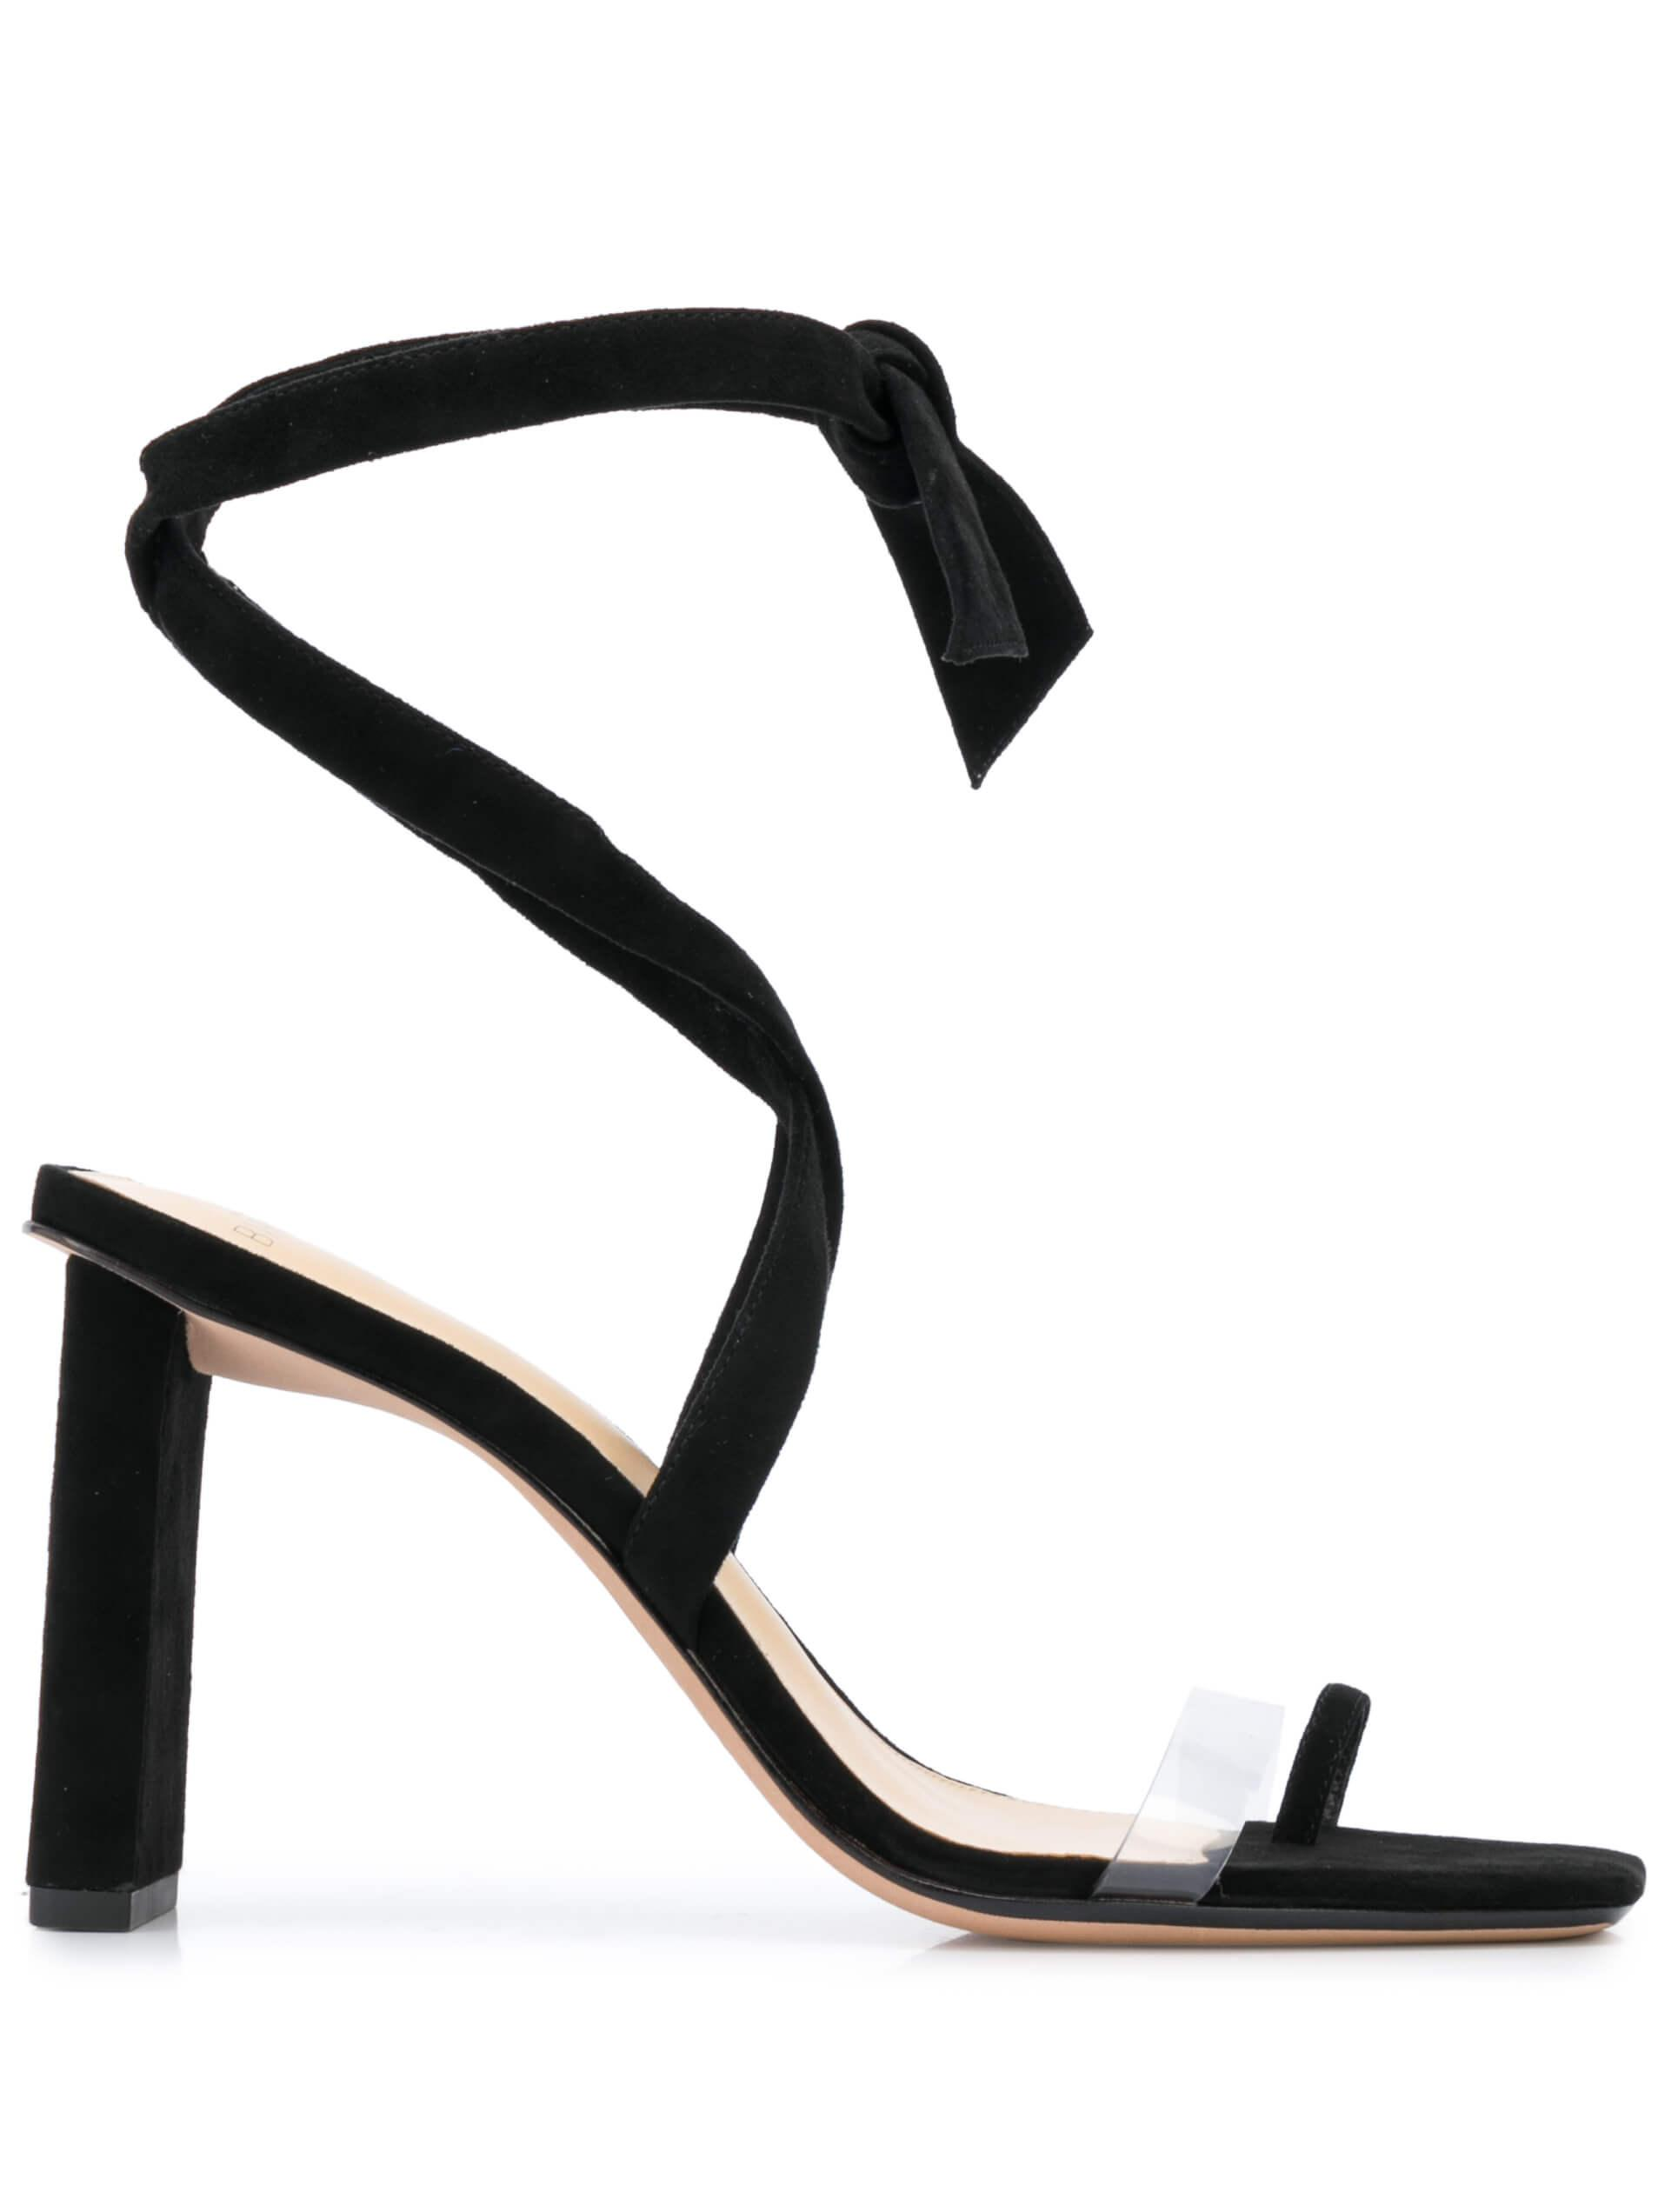 Katie 85mm PVC/Leather Sandal